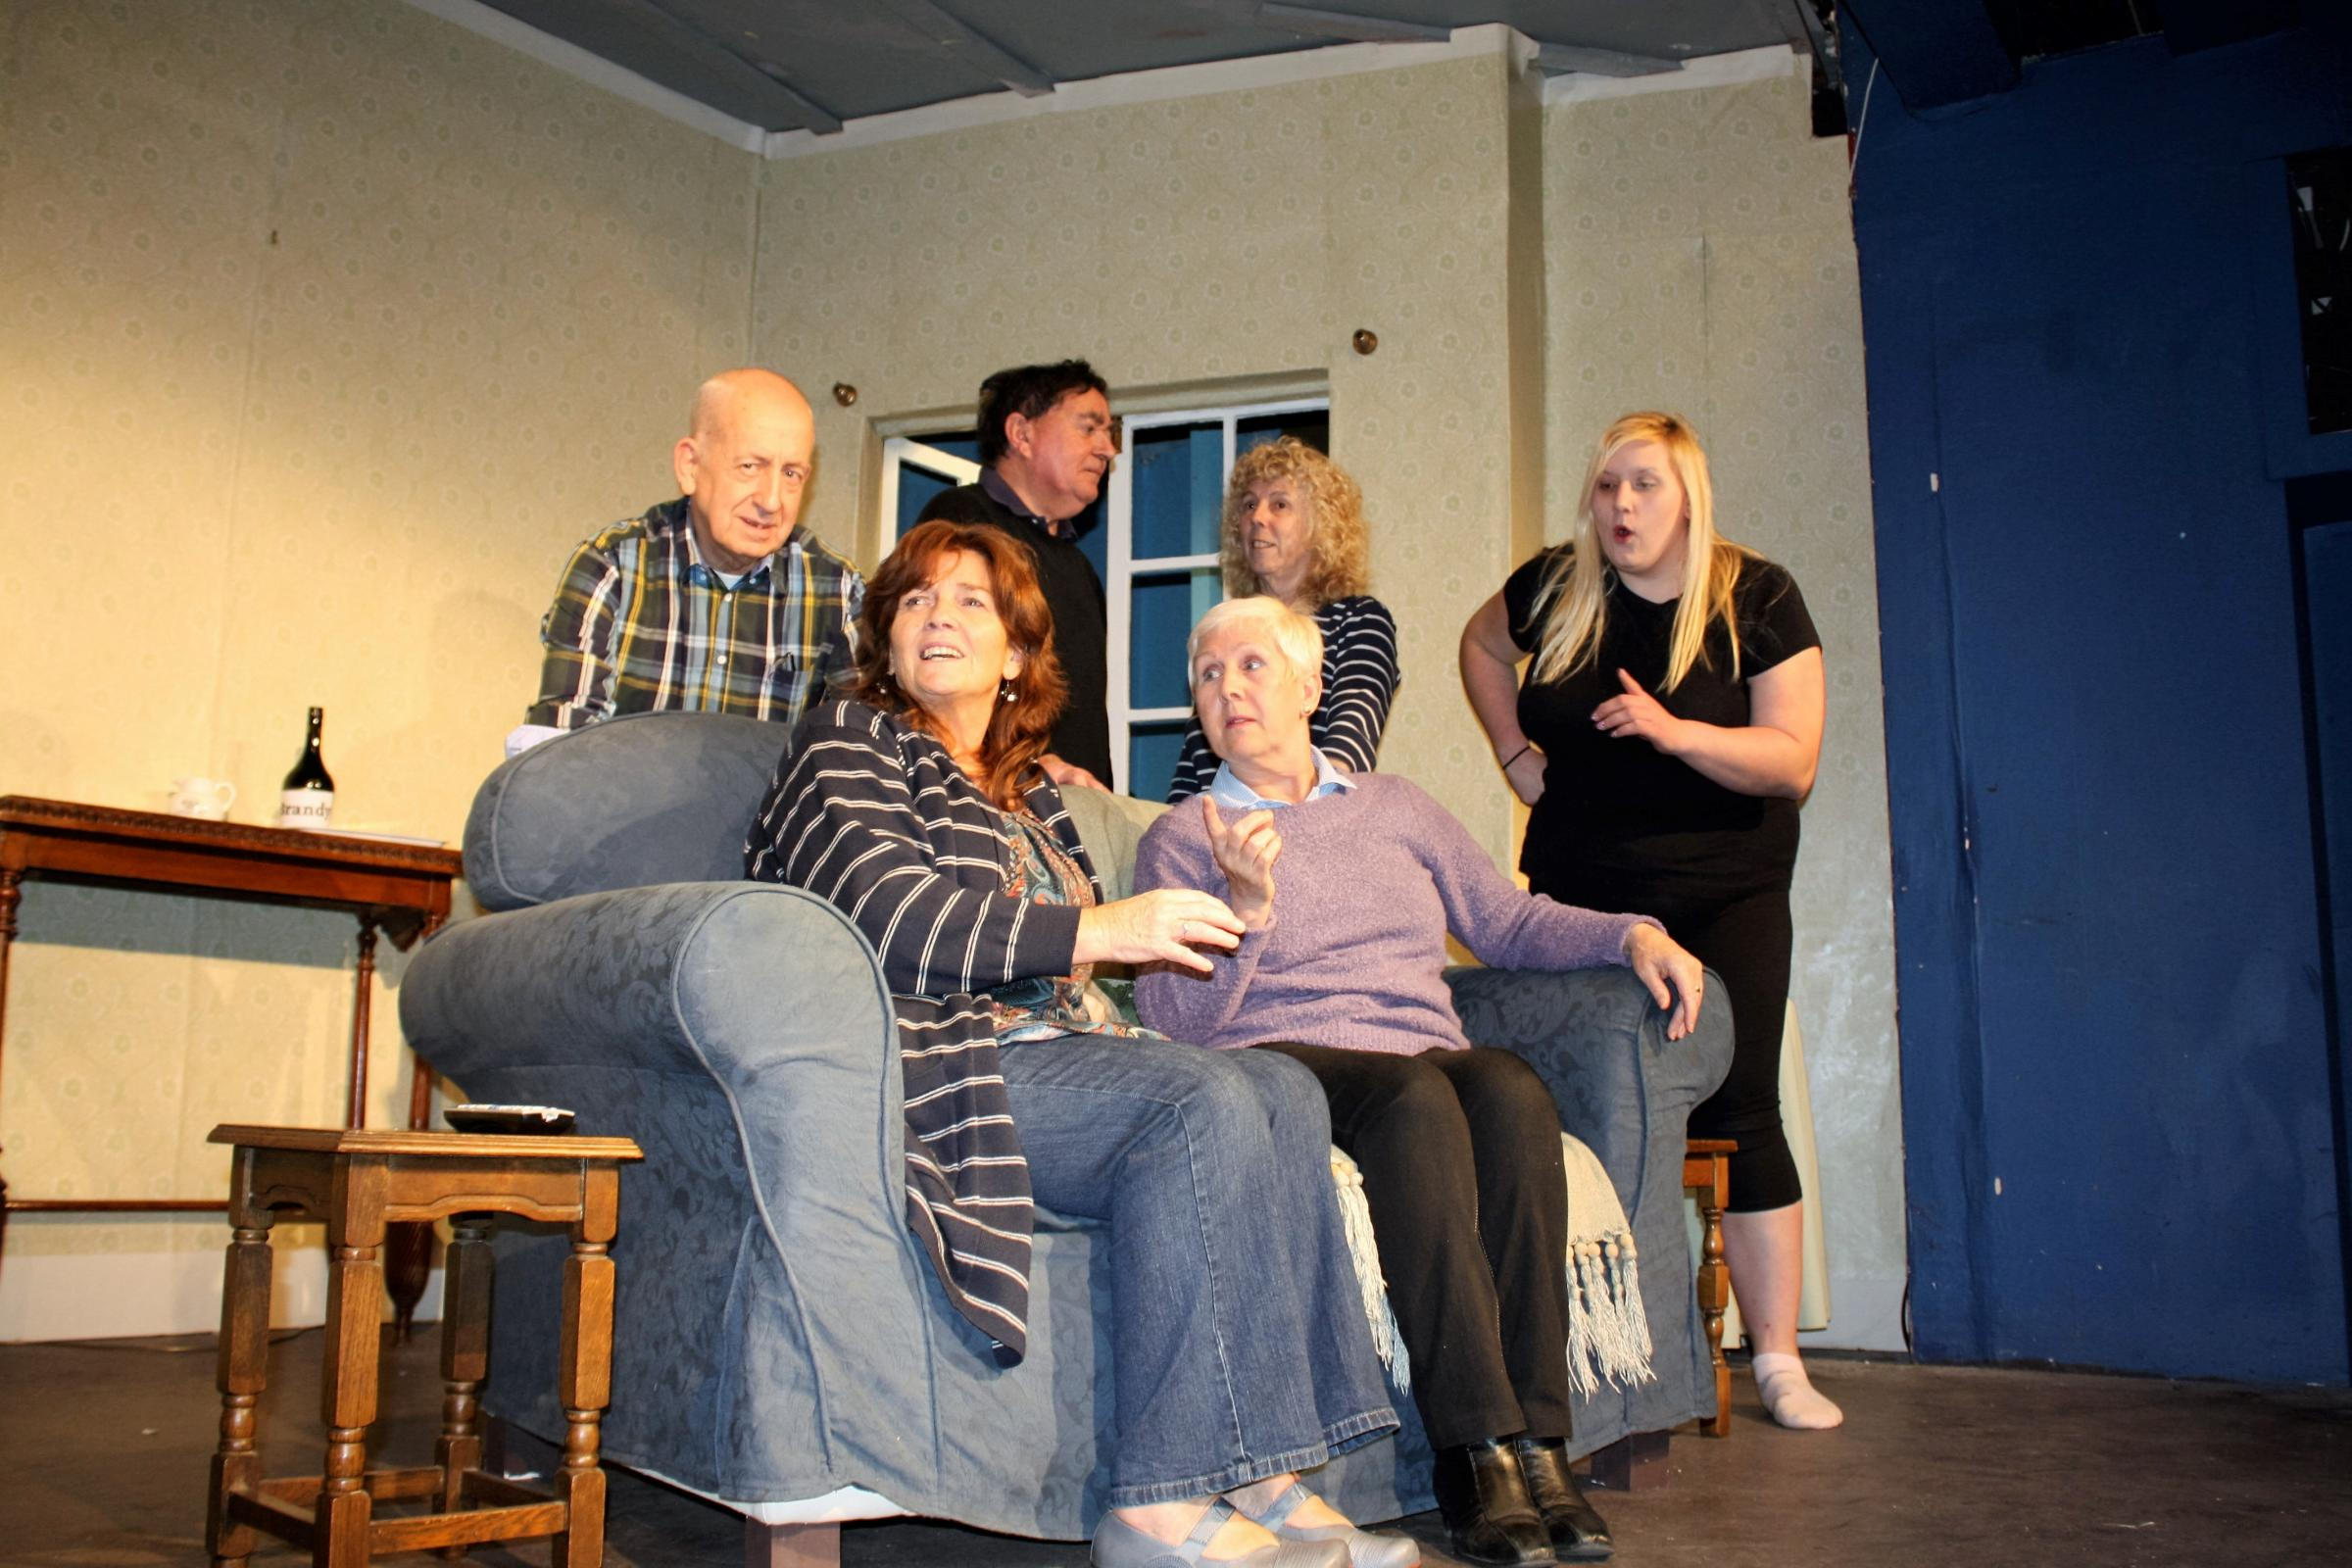 Delightful Comedy Staged At City Theatre The Northern Echo